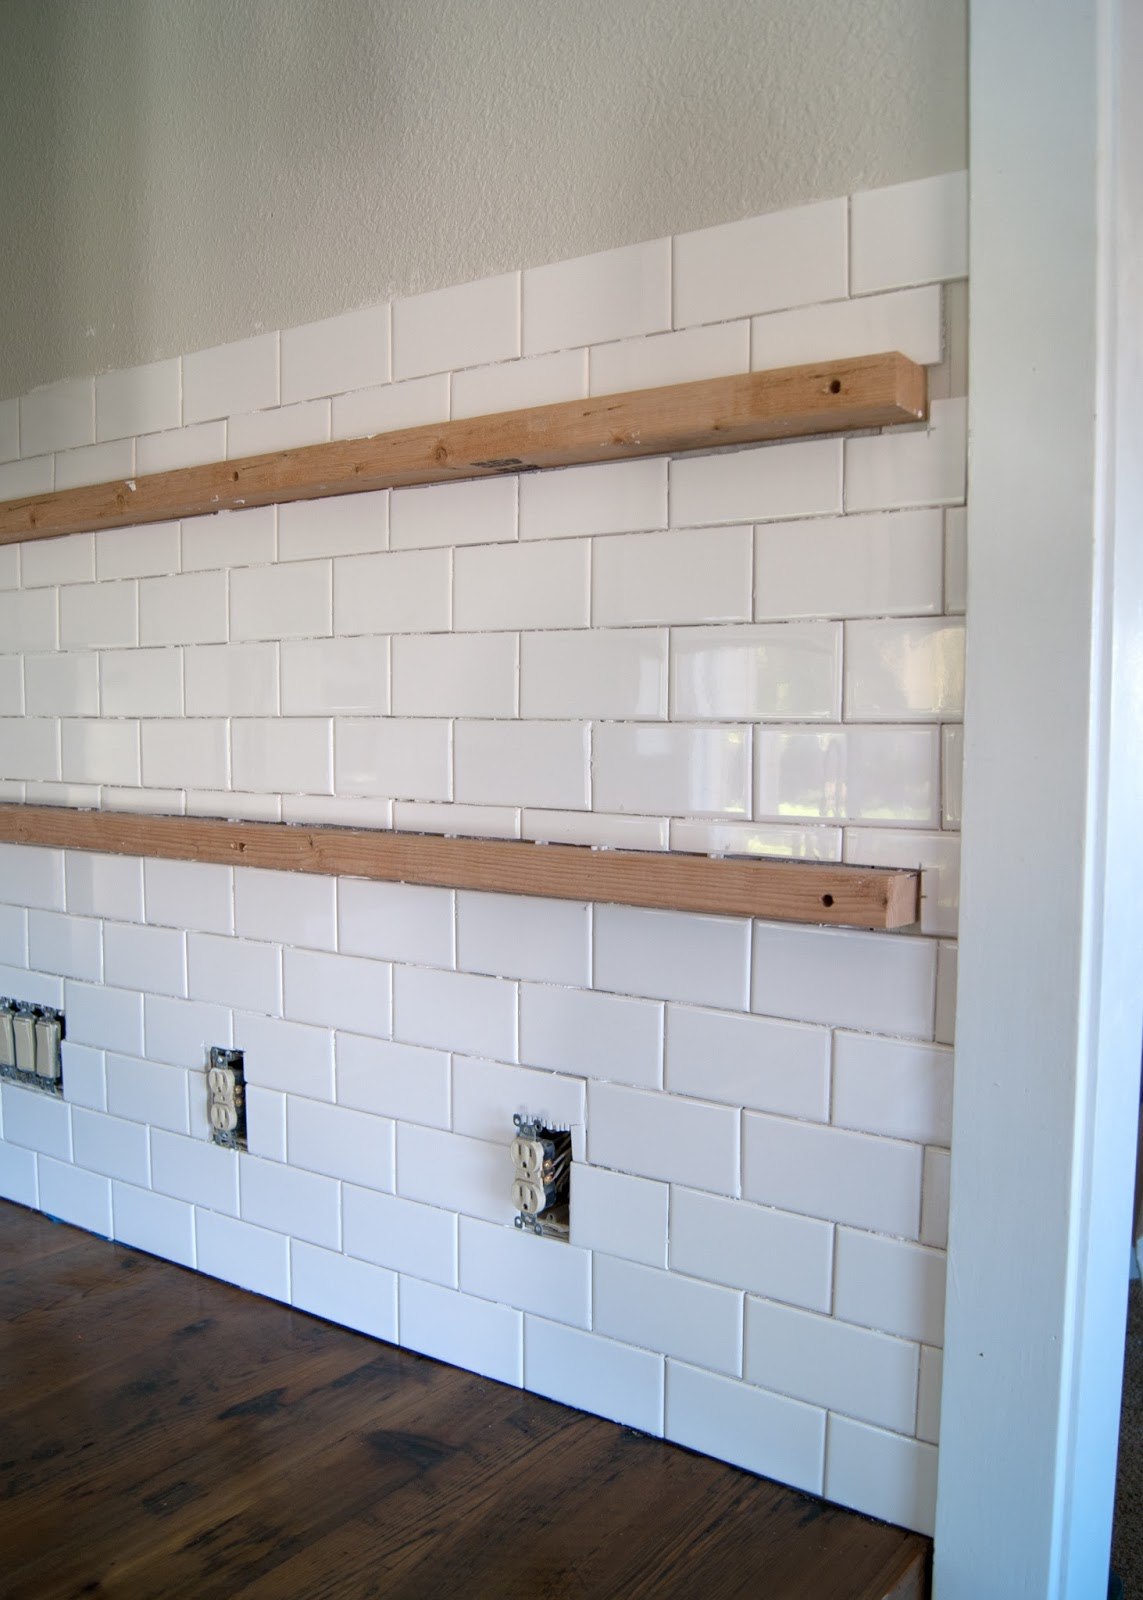 Well Known Subway Tile Installation Tips On Grouting With Fusion Pro Rh88